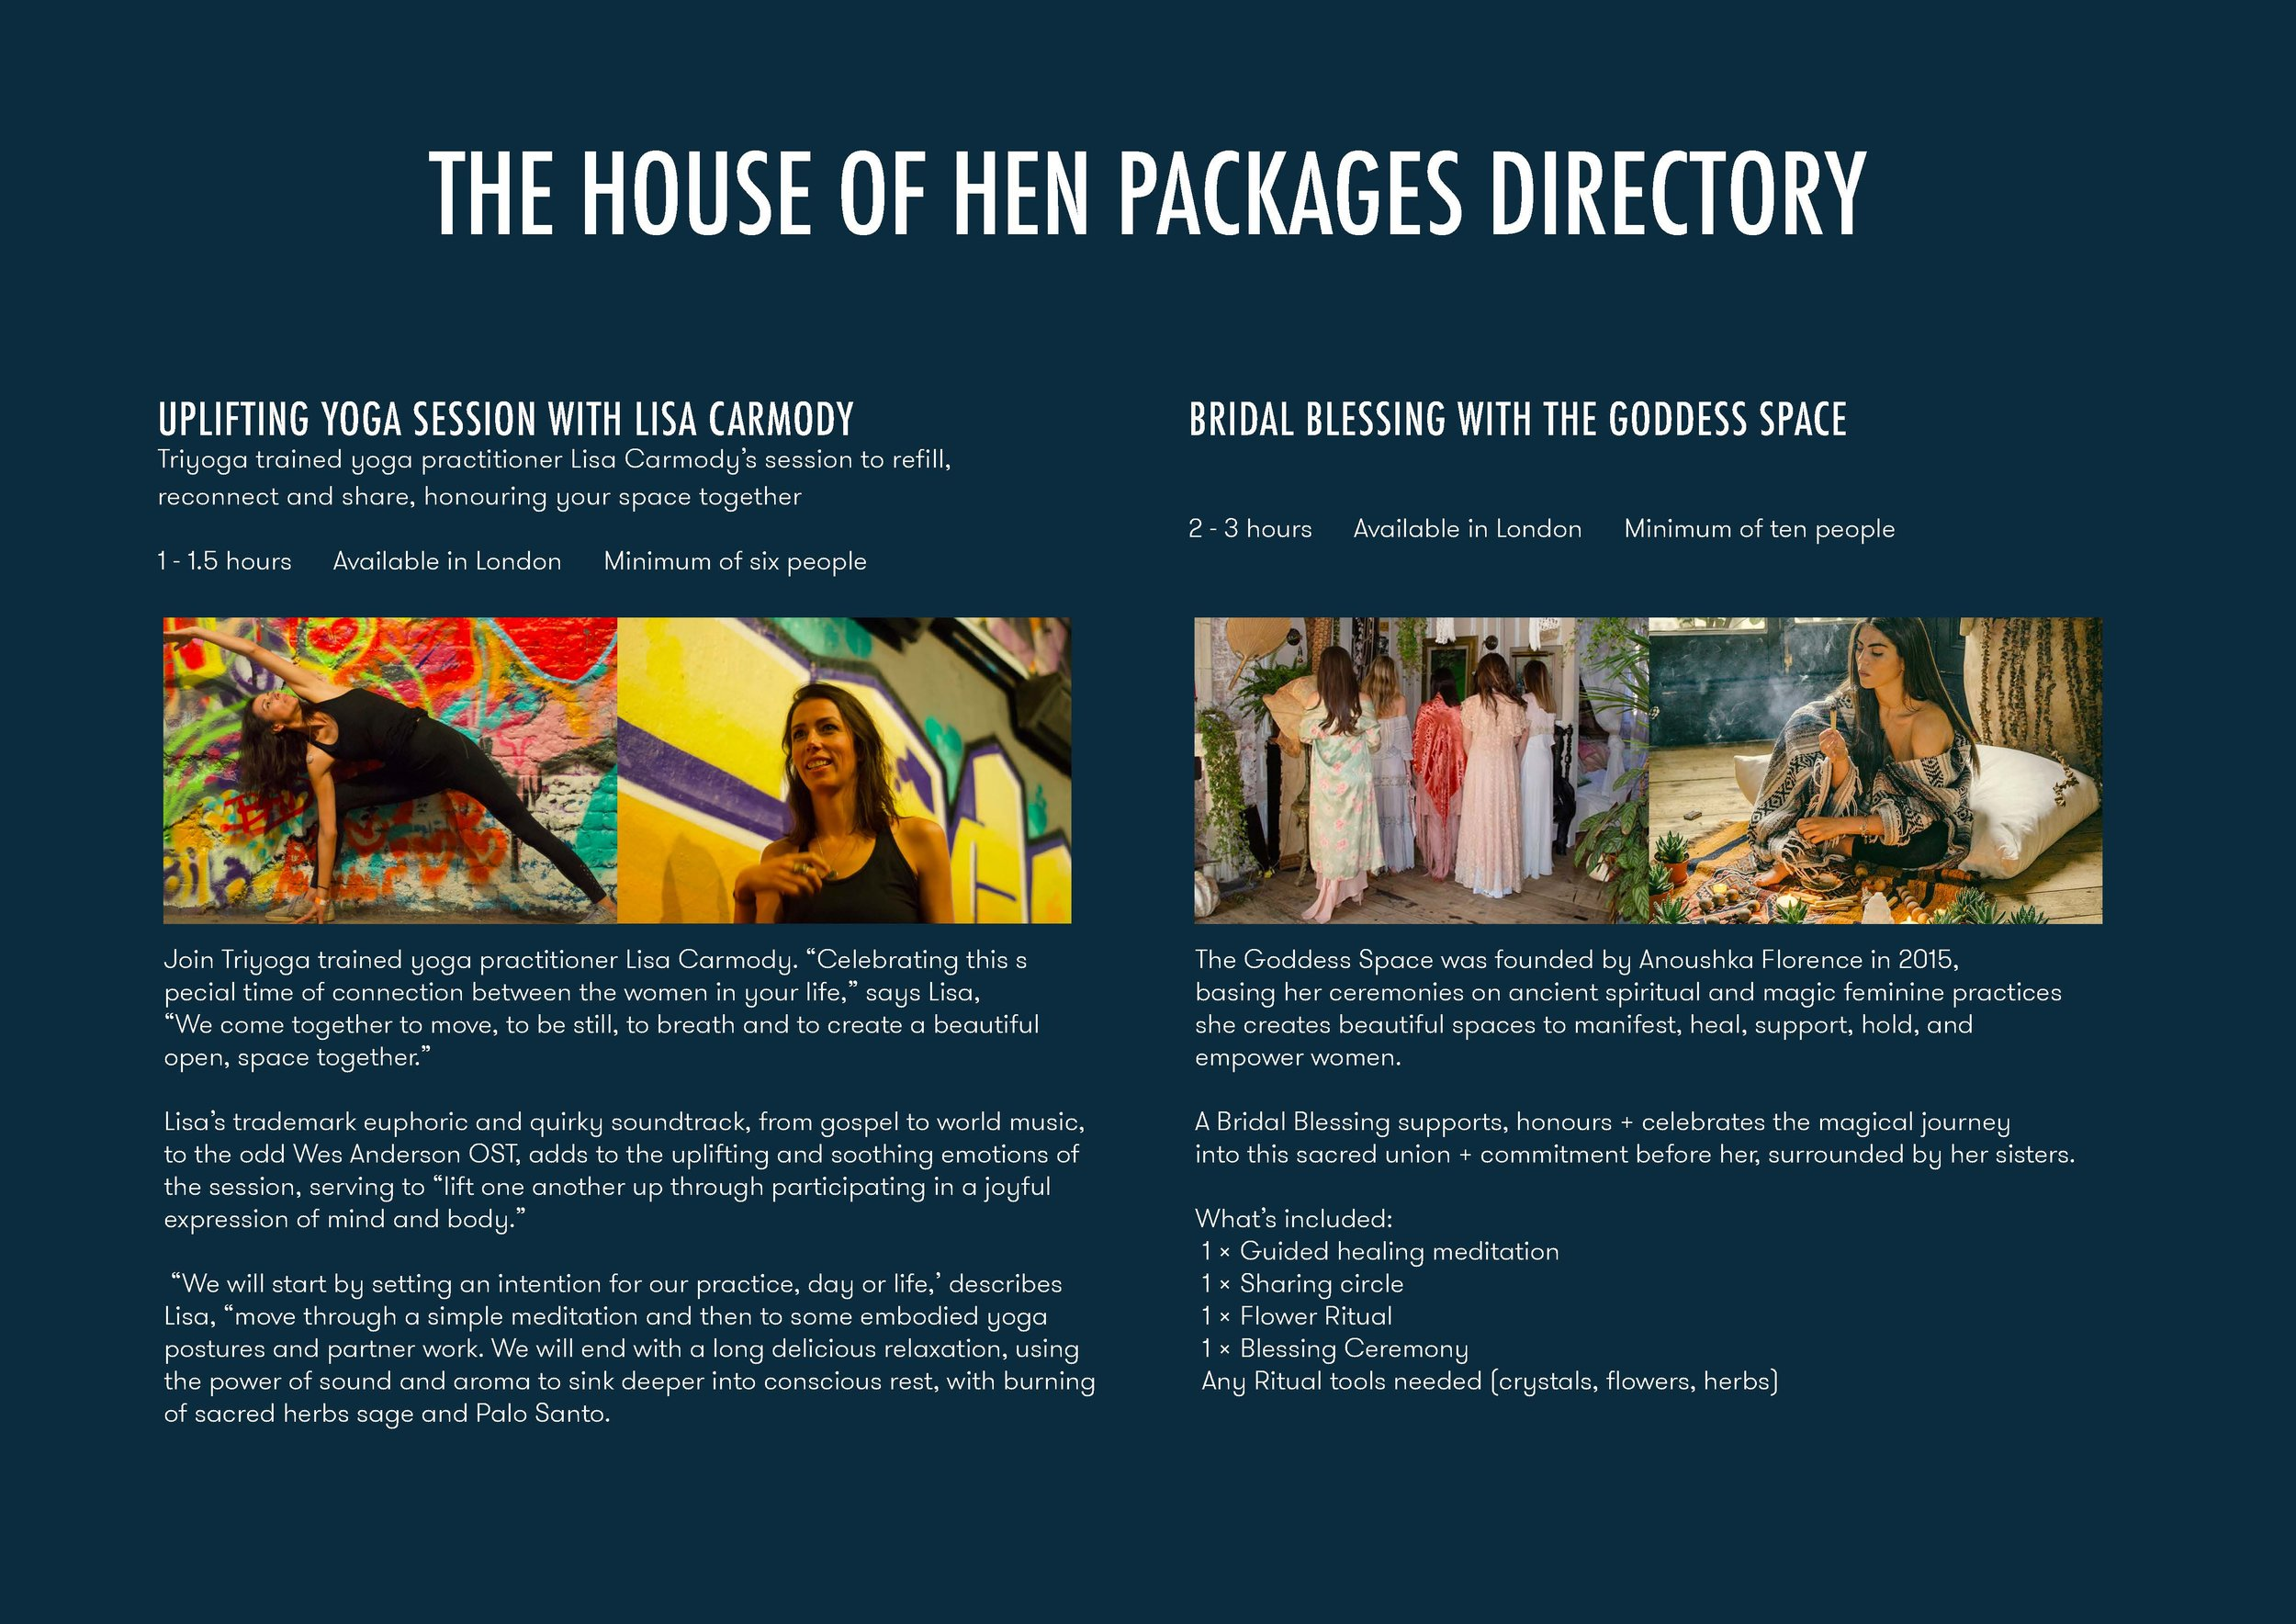 House of Hen_Packages Directory_Page_06.jpg